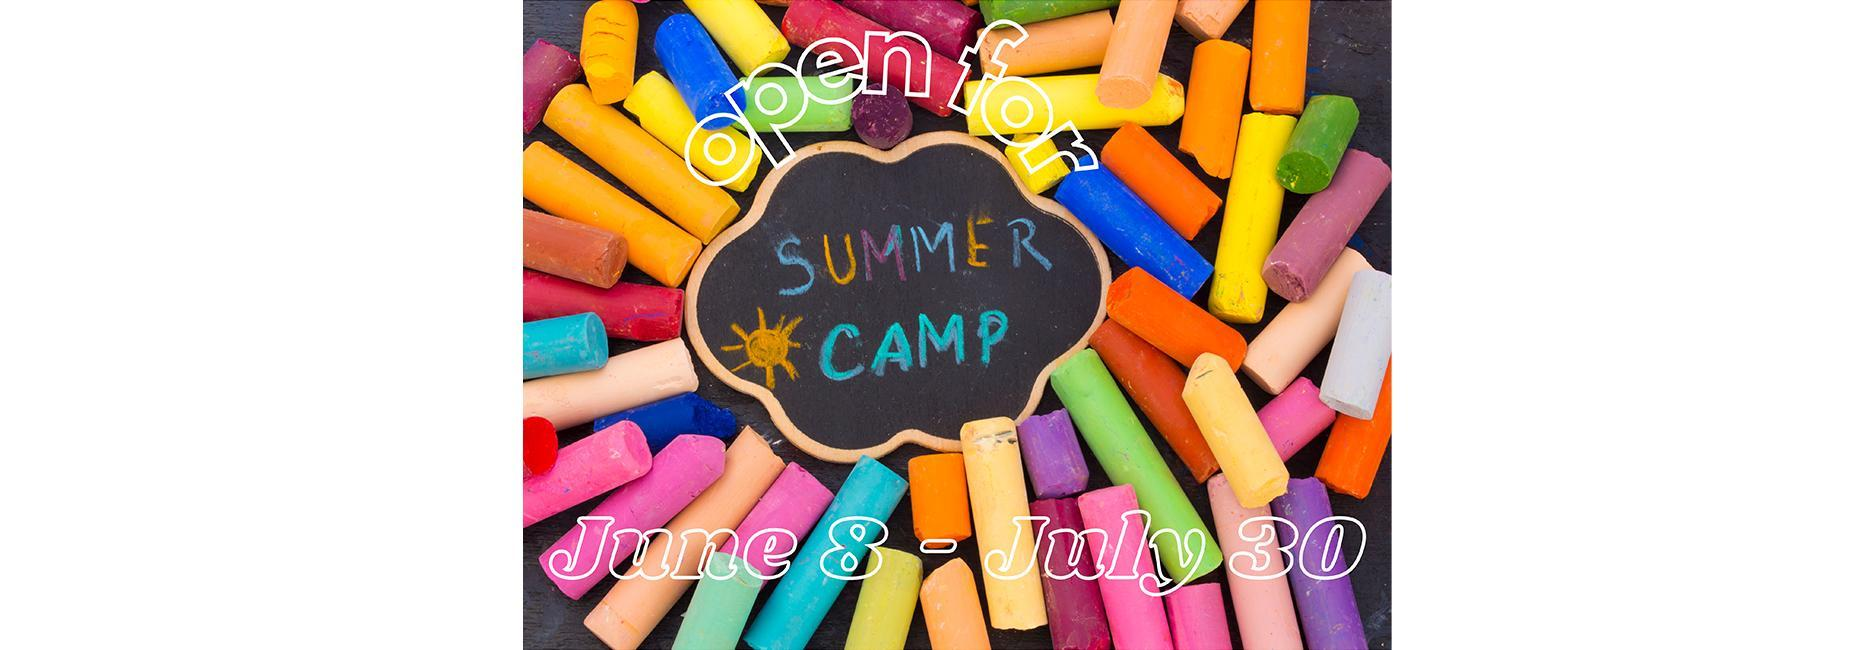 Open for Summer Camp